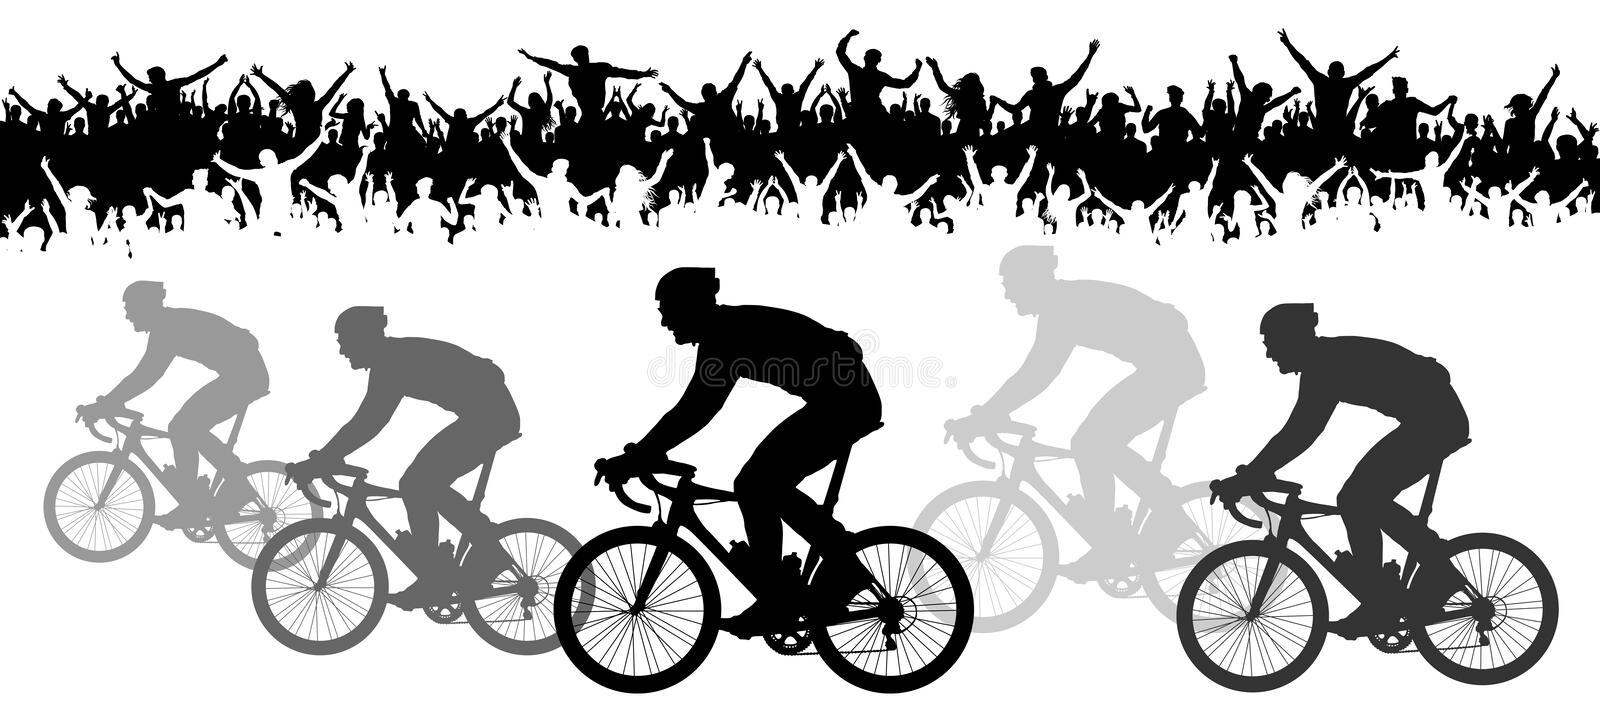 Crowd of fans, silhouette. Bicycle race. Sport event banner. Crowd of fans, silhouette. Bicycle race. Sport event banner vector illustration